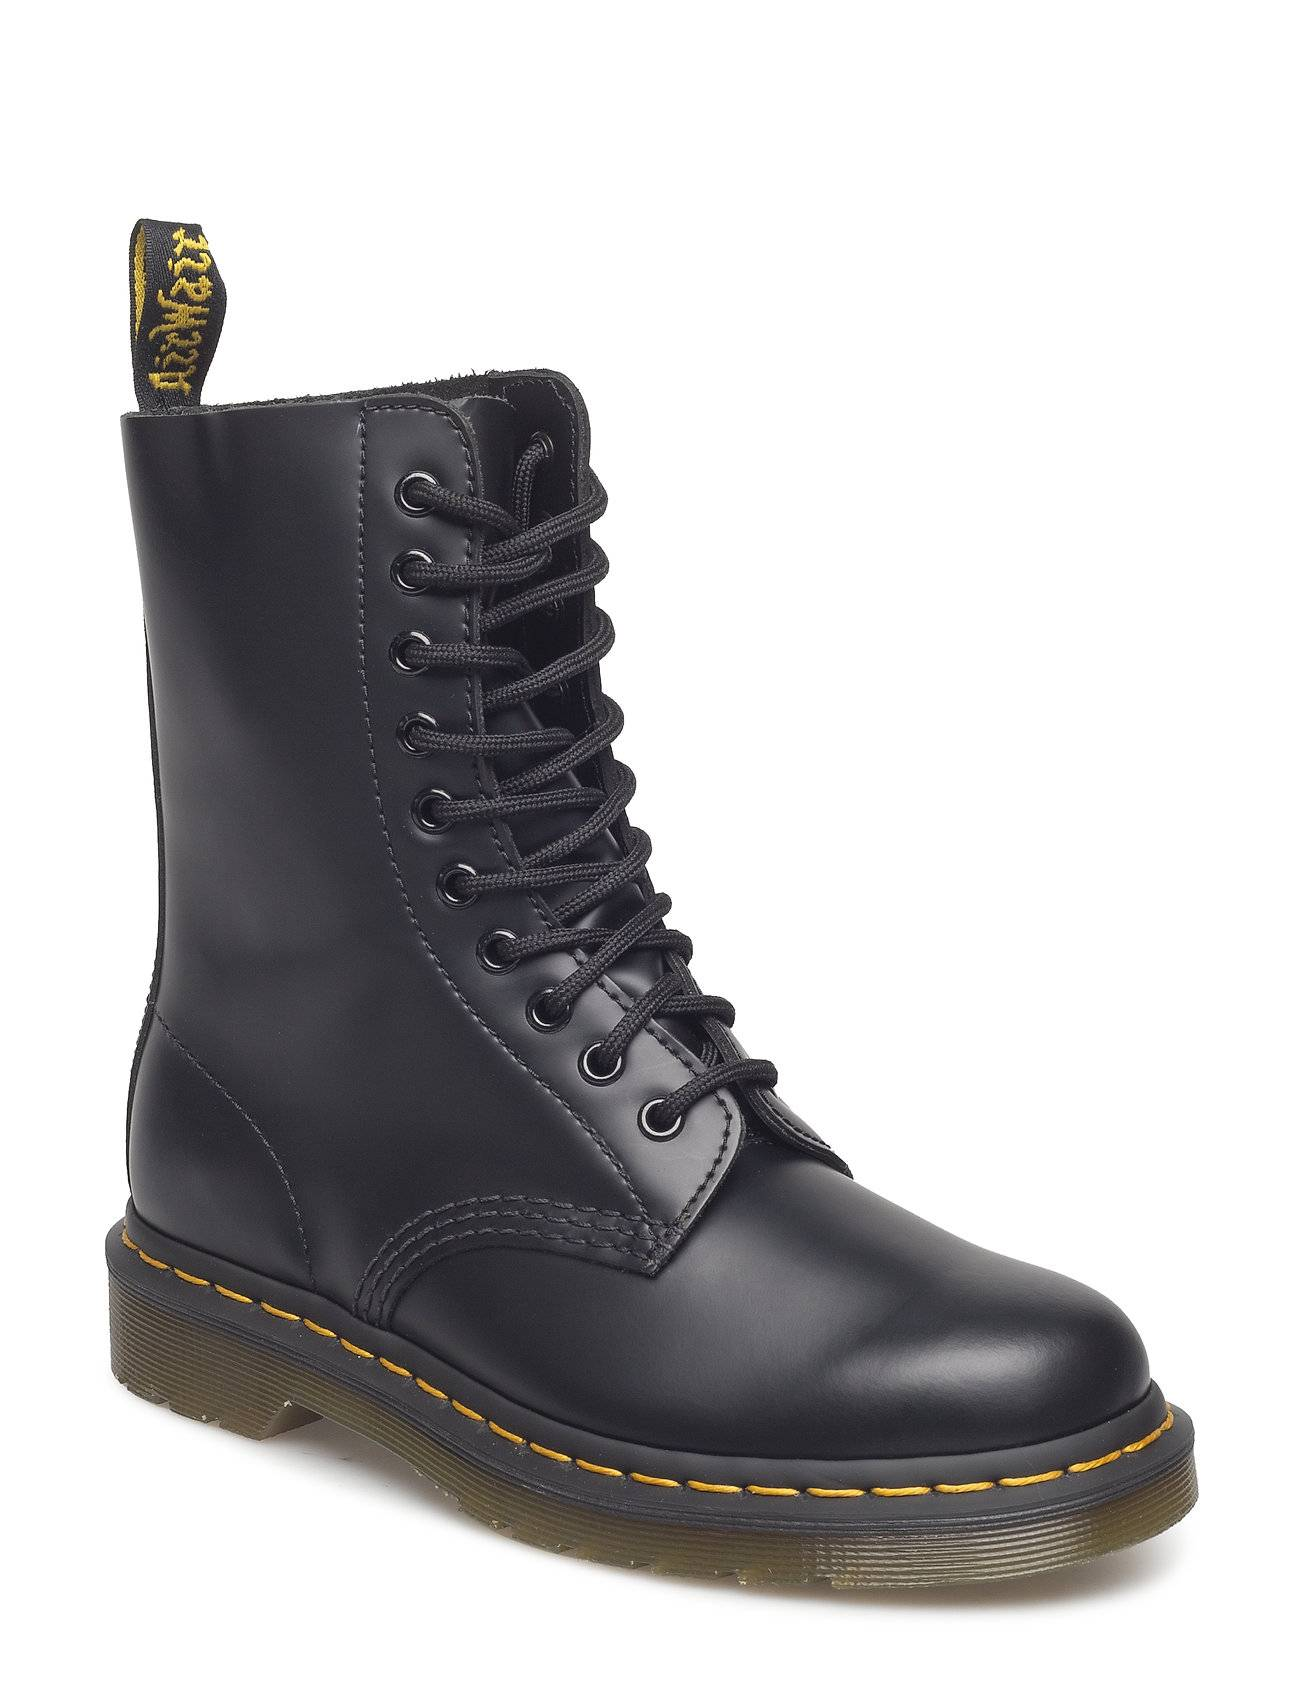 Image of Dr. Martens 1490 Nyörisaappaat Musta Dr. Martens